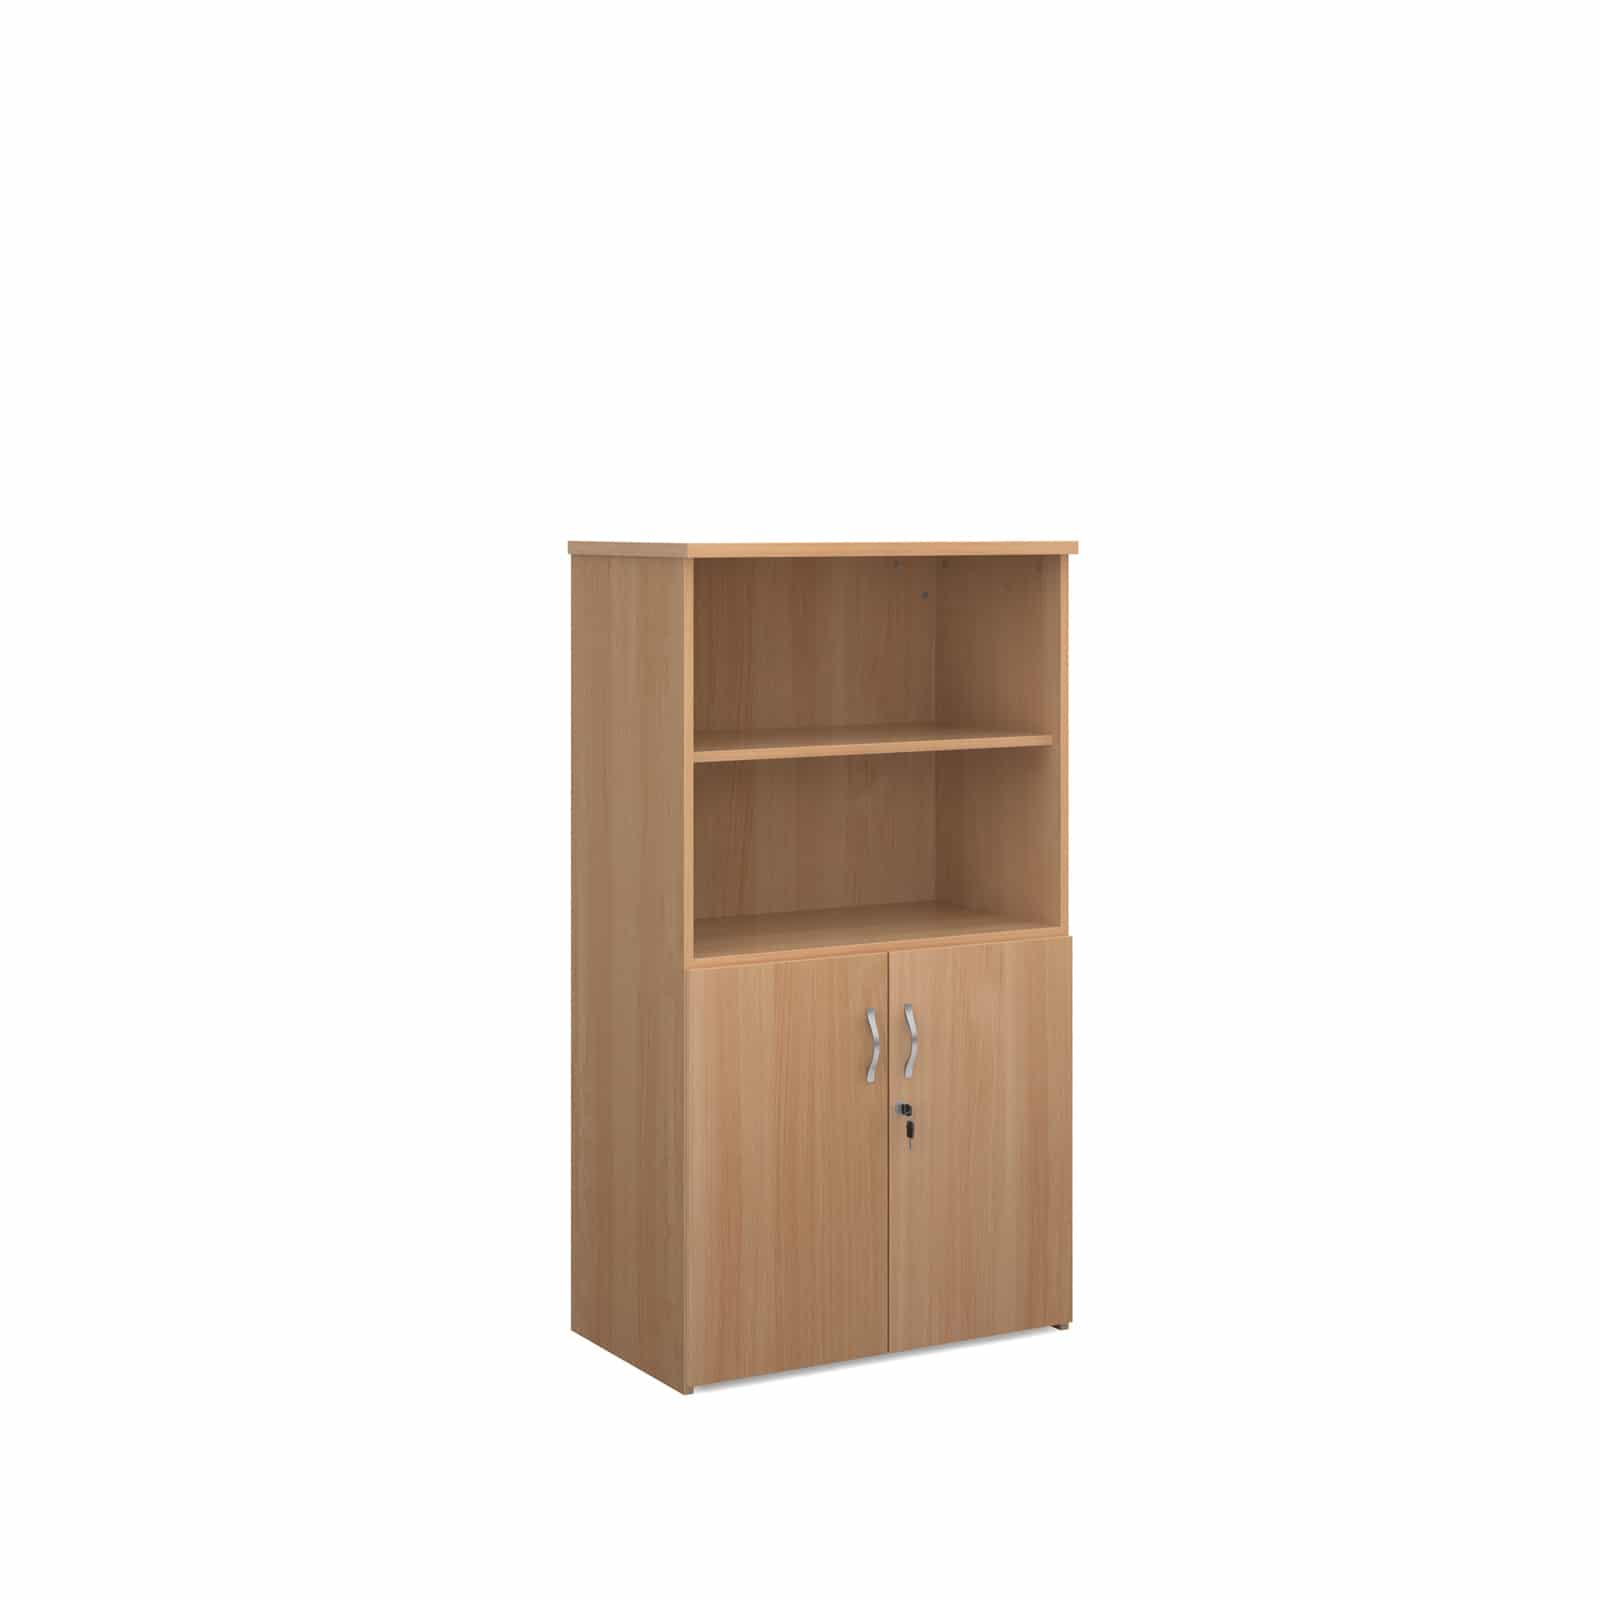 Beech Wood Office Tall Storage Combination Unit 1440mm